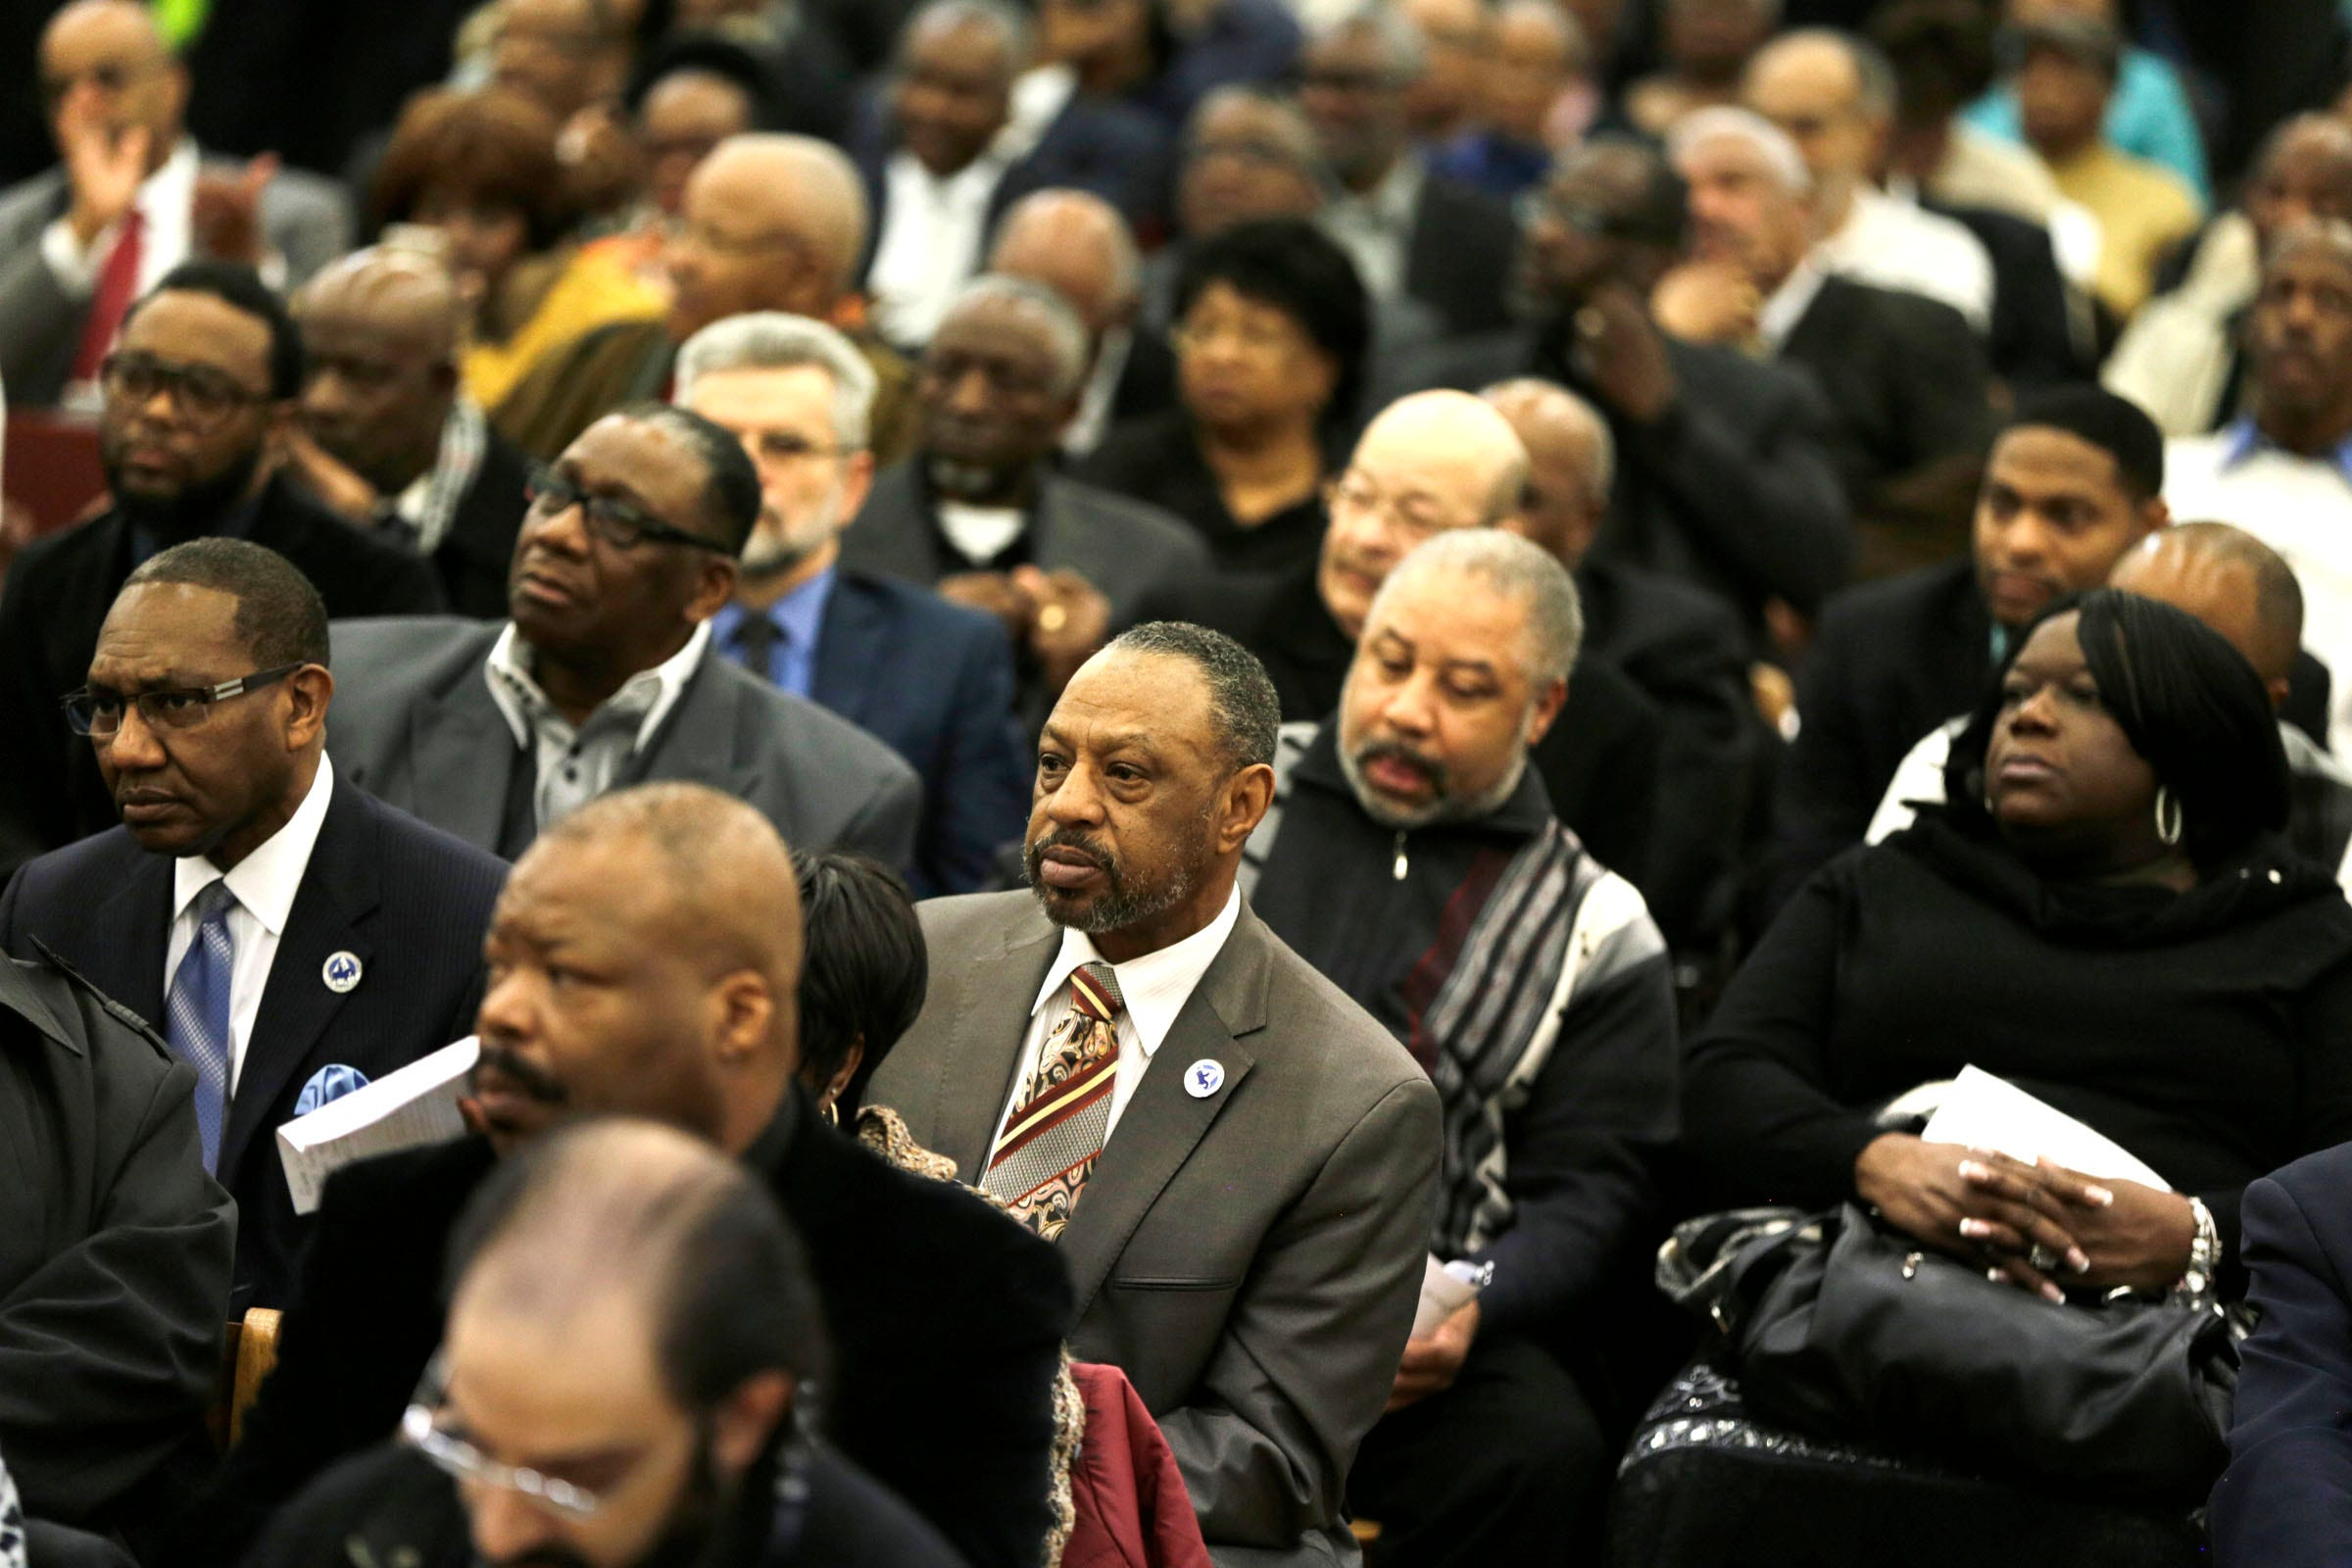 200 clergy members protest hike in Detroit water and drainage fees